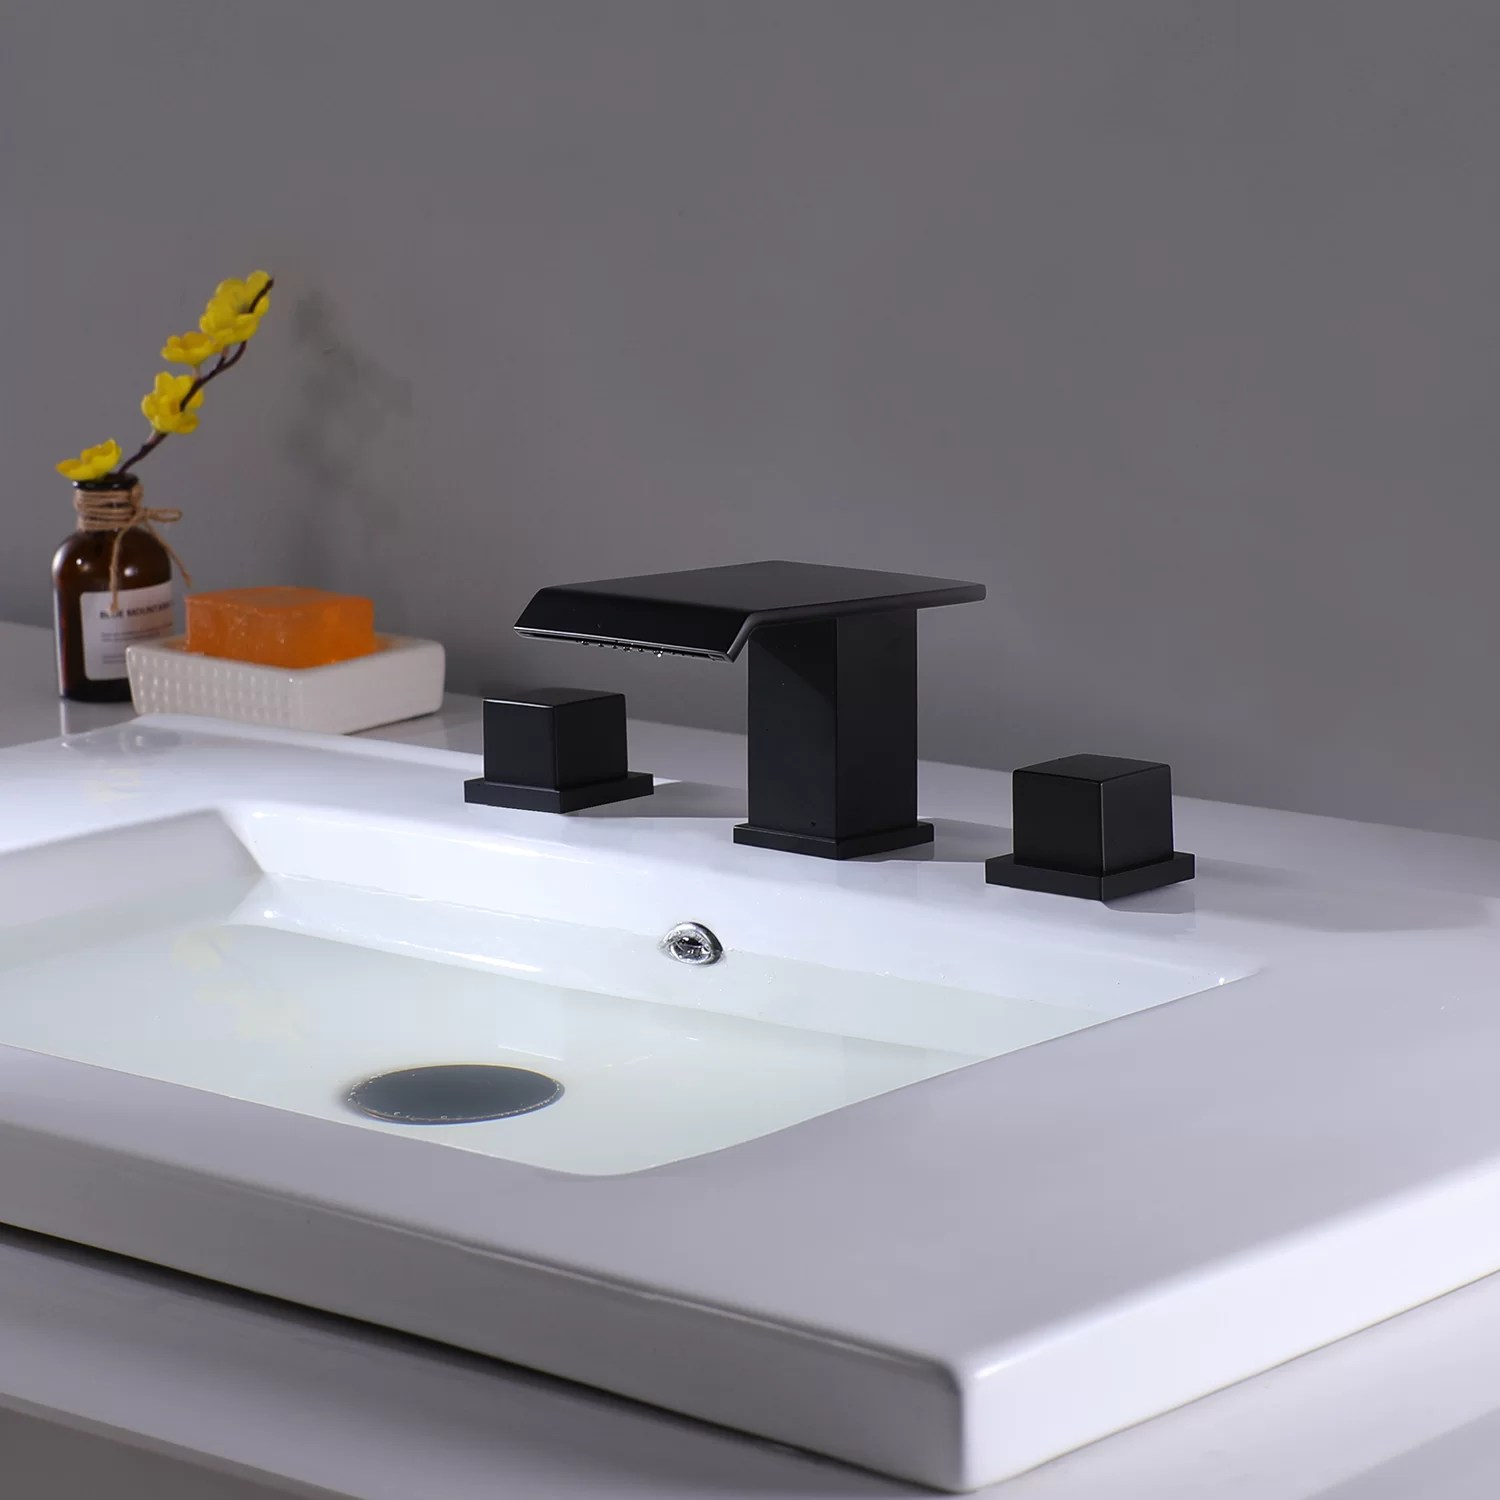 waterfall bathroom sink faucet in matte black 3 hole double square handles widespread black bathroom faucet